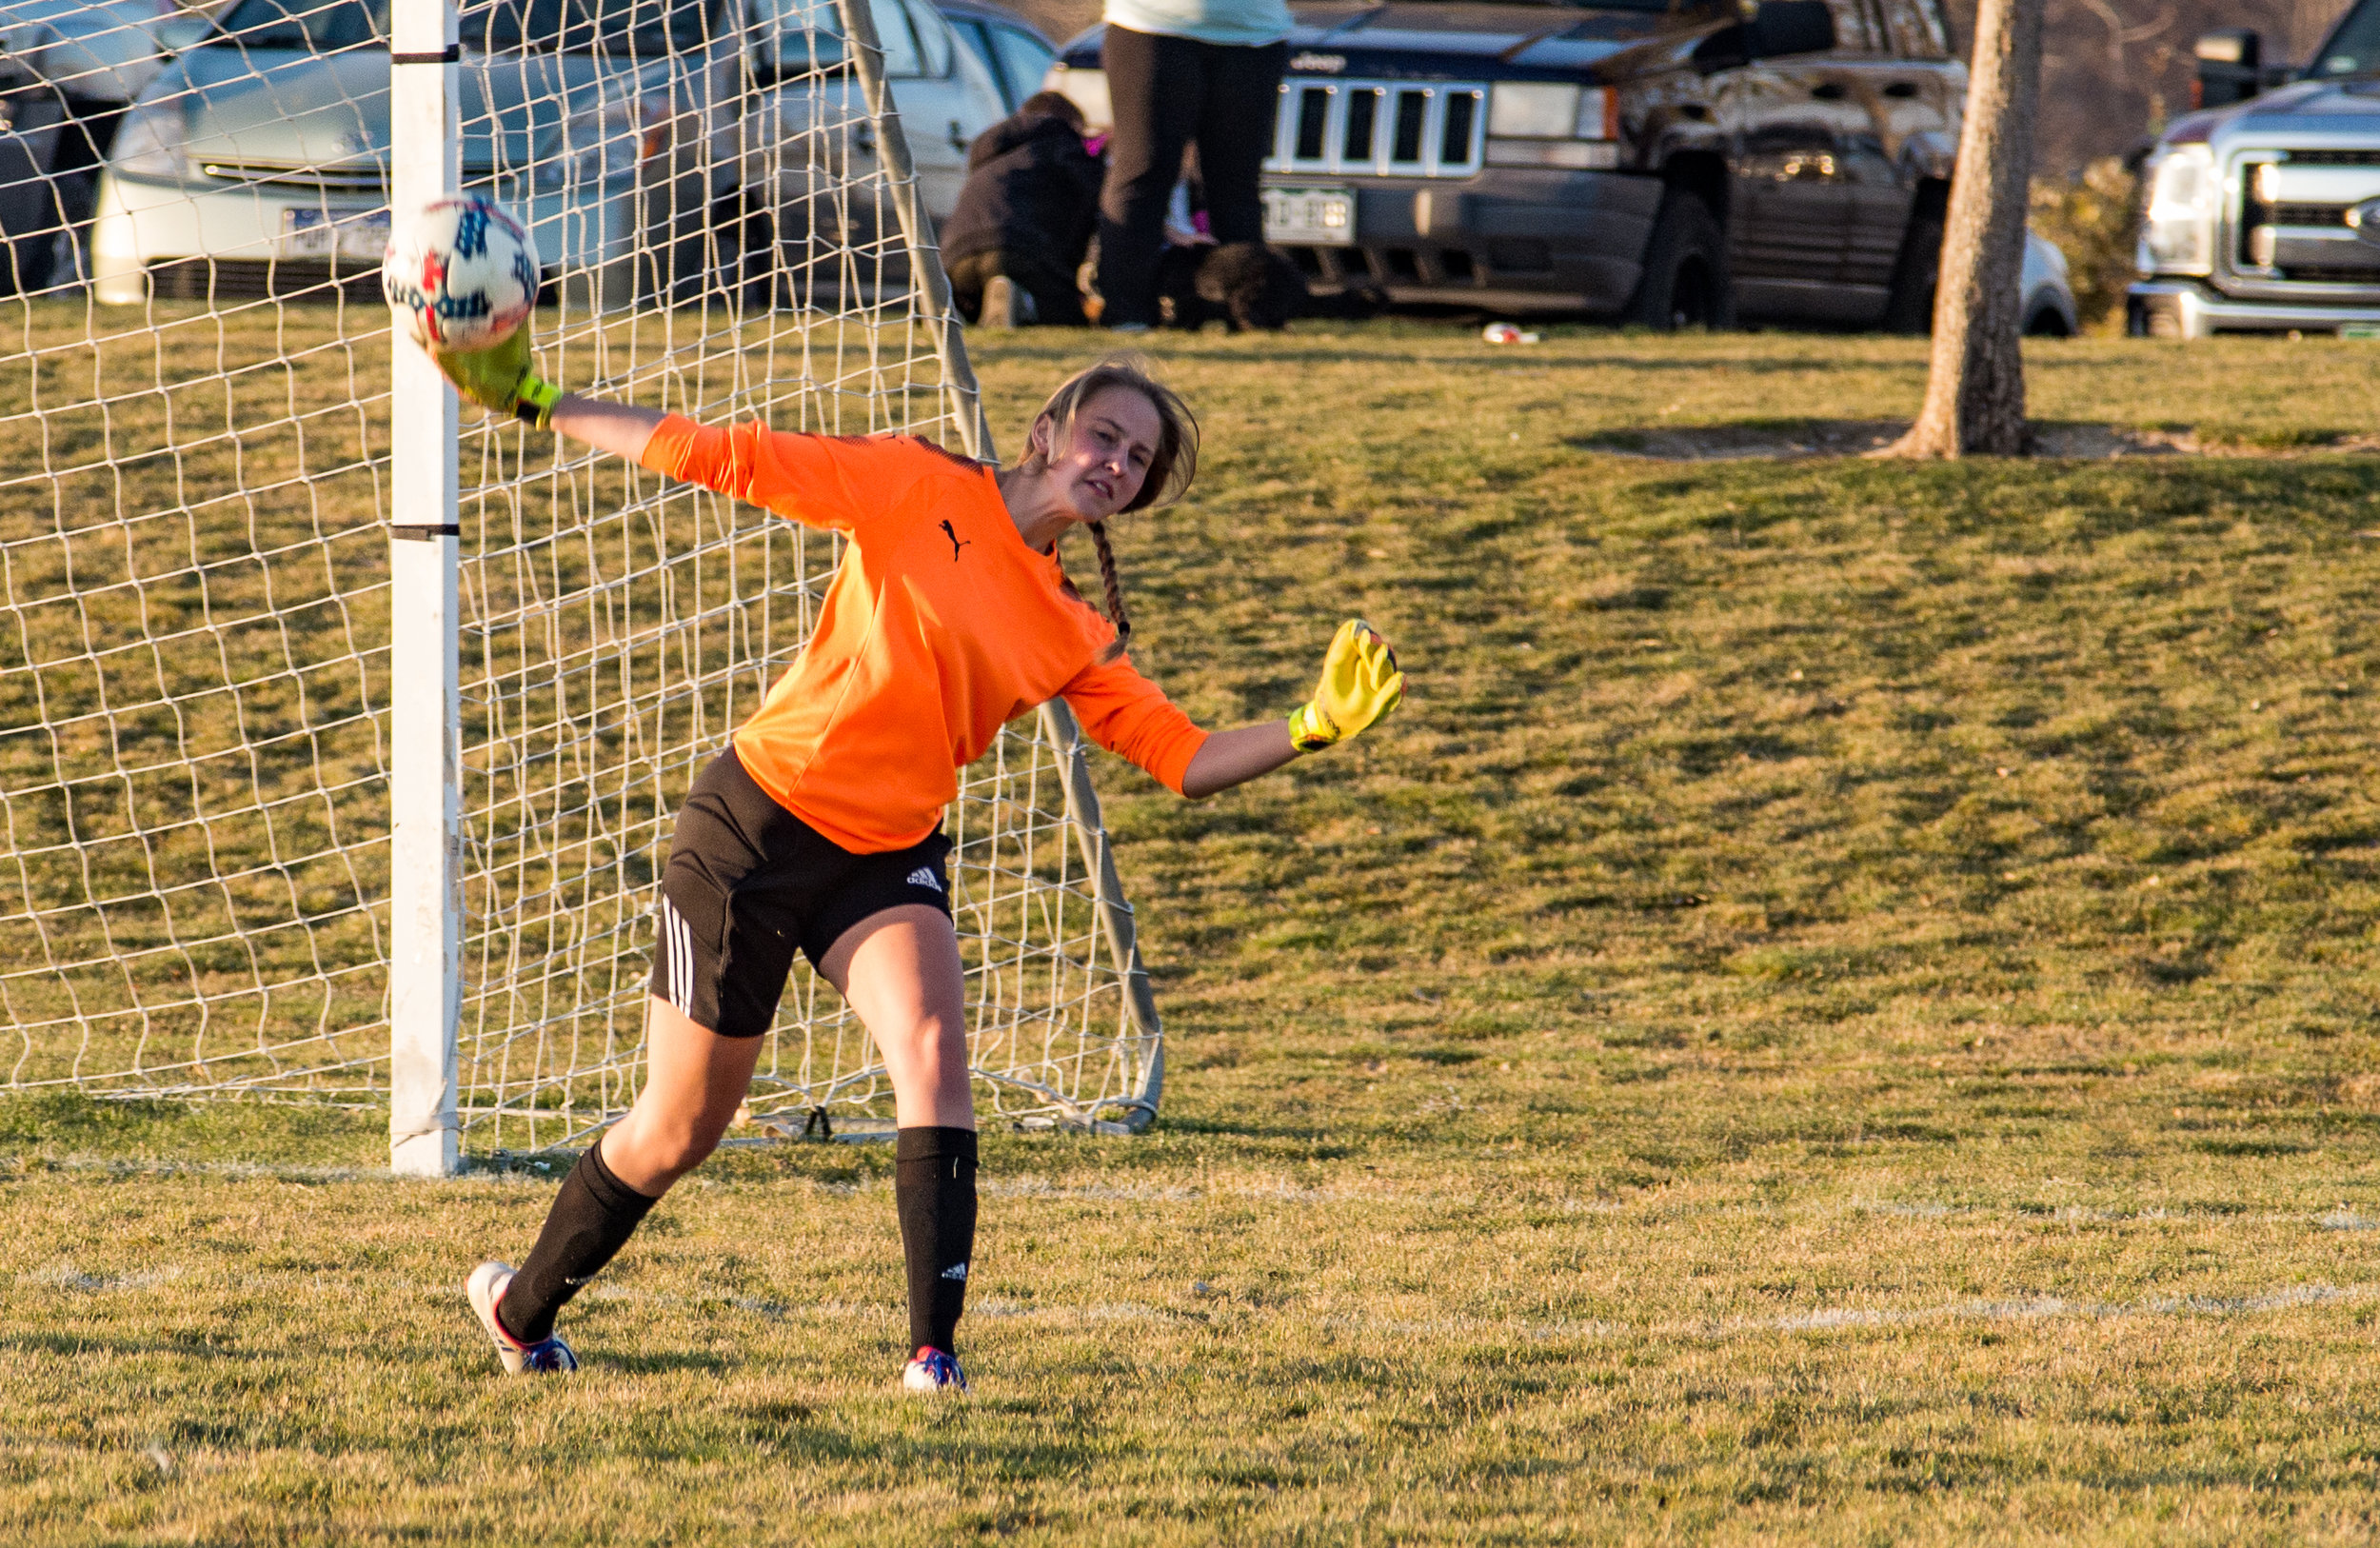 20171103-United SC vs Chaffee County-PMG_9393.jpg